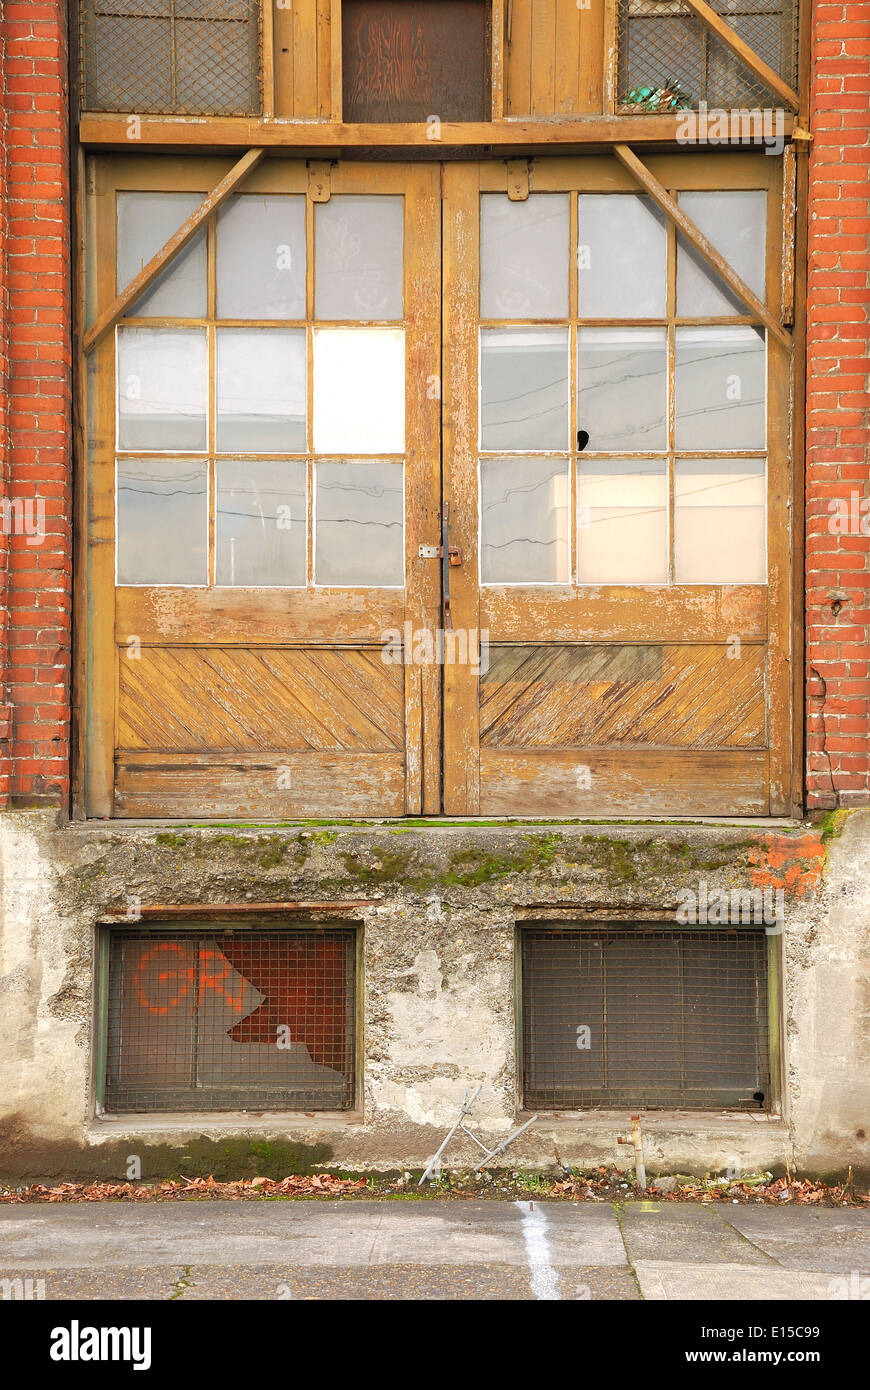 old warehouse building doors in an industrial district in Portland Oregon & old warehouse building doors in an industrial district in Portland ...